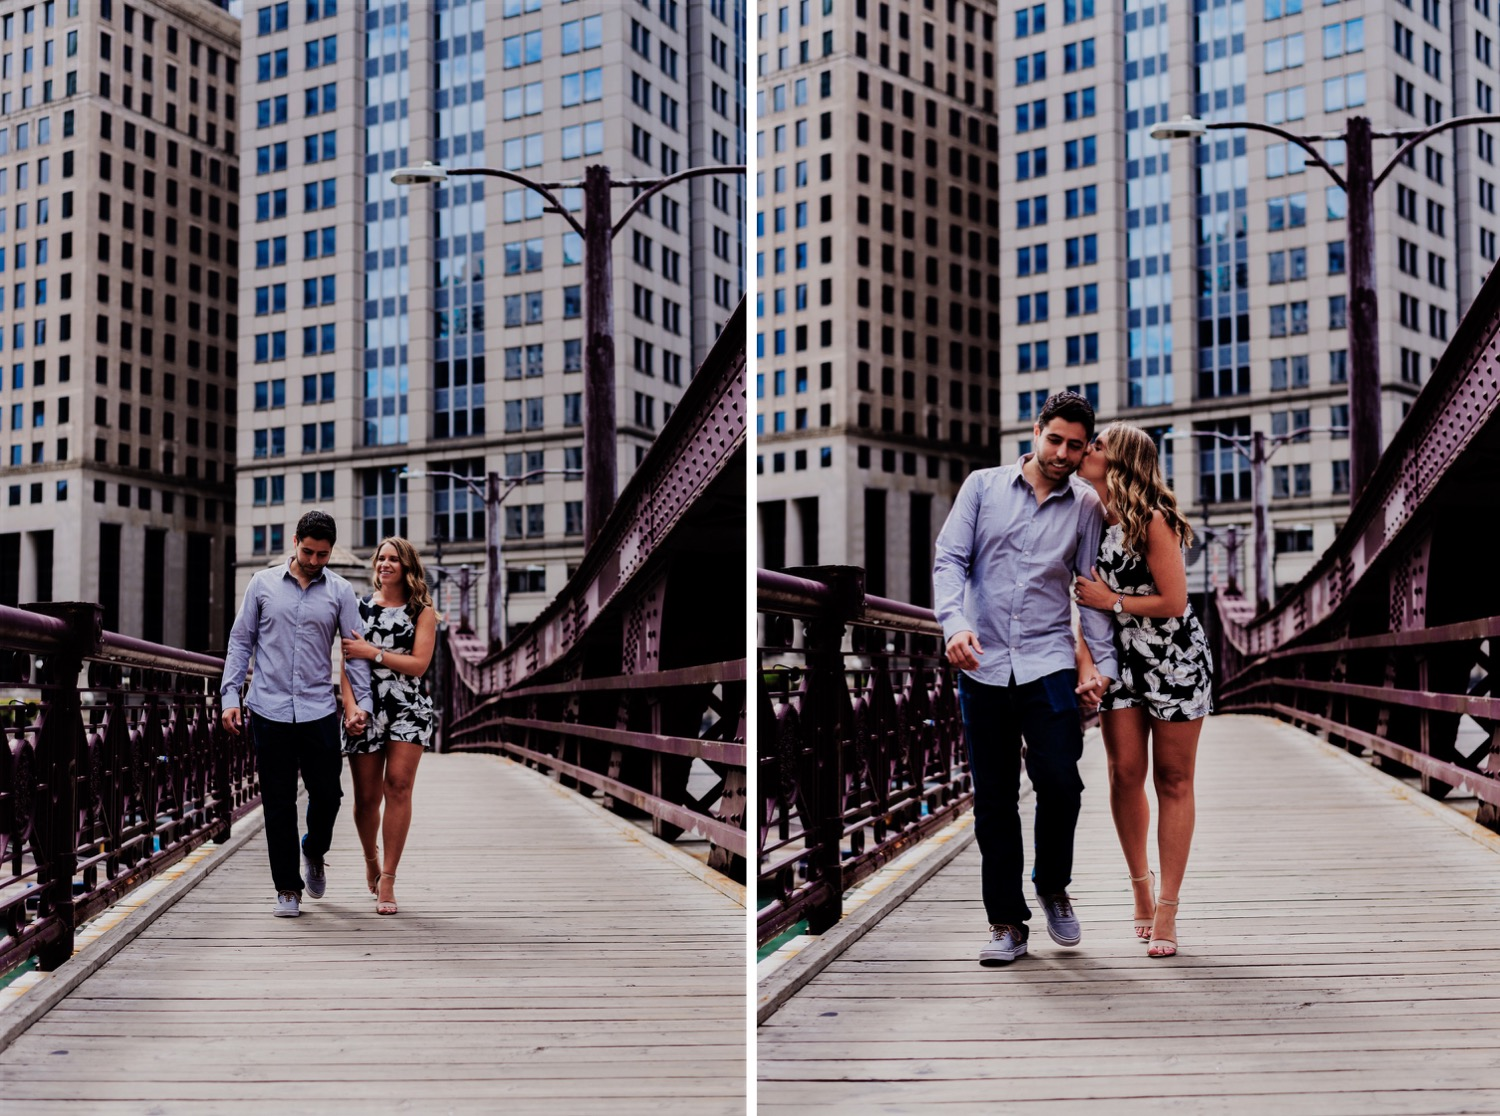 11_Margaret-Andrew-Chicago-EngagementSession_0329_Margaret-Andrew-Chicago-EngagementSession_0333_engagementsession_engaged_chicagophotographer.jpg